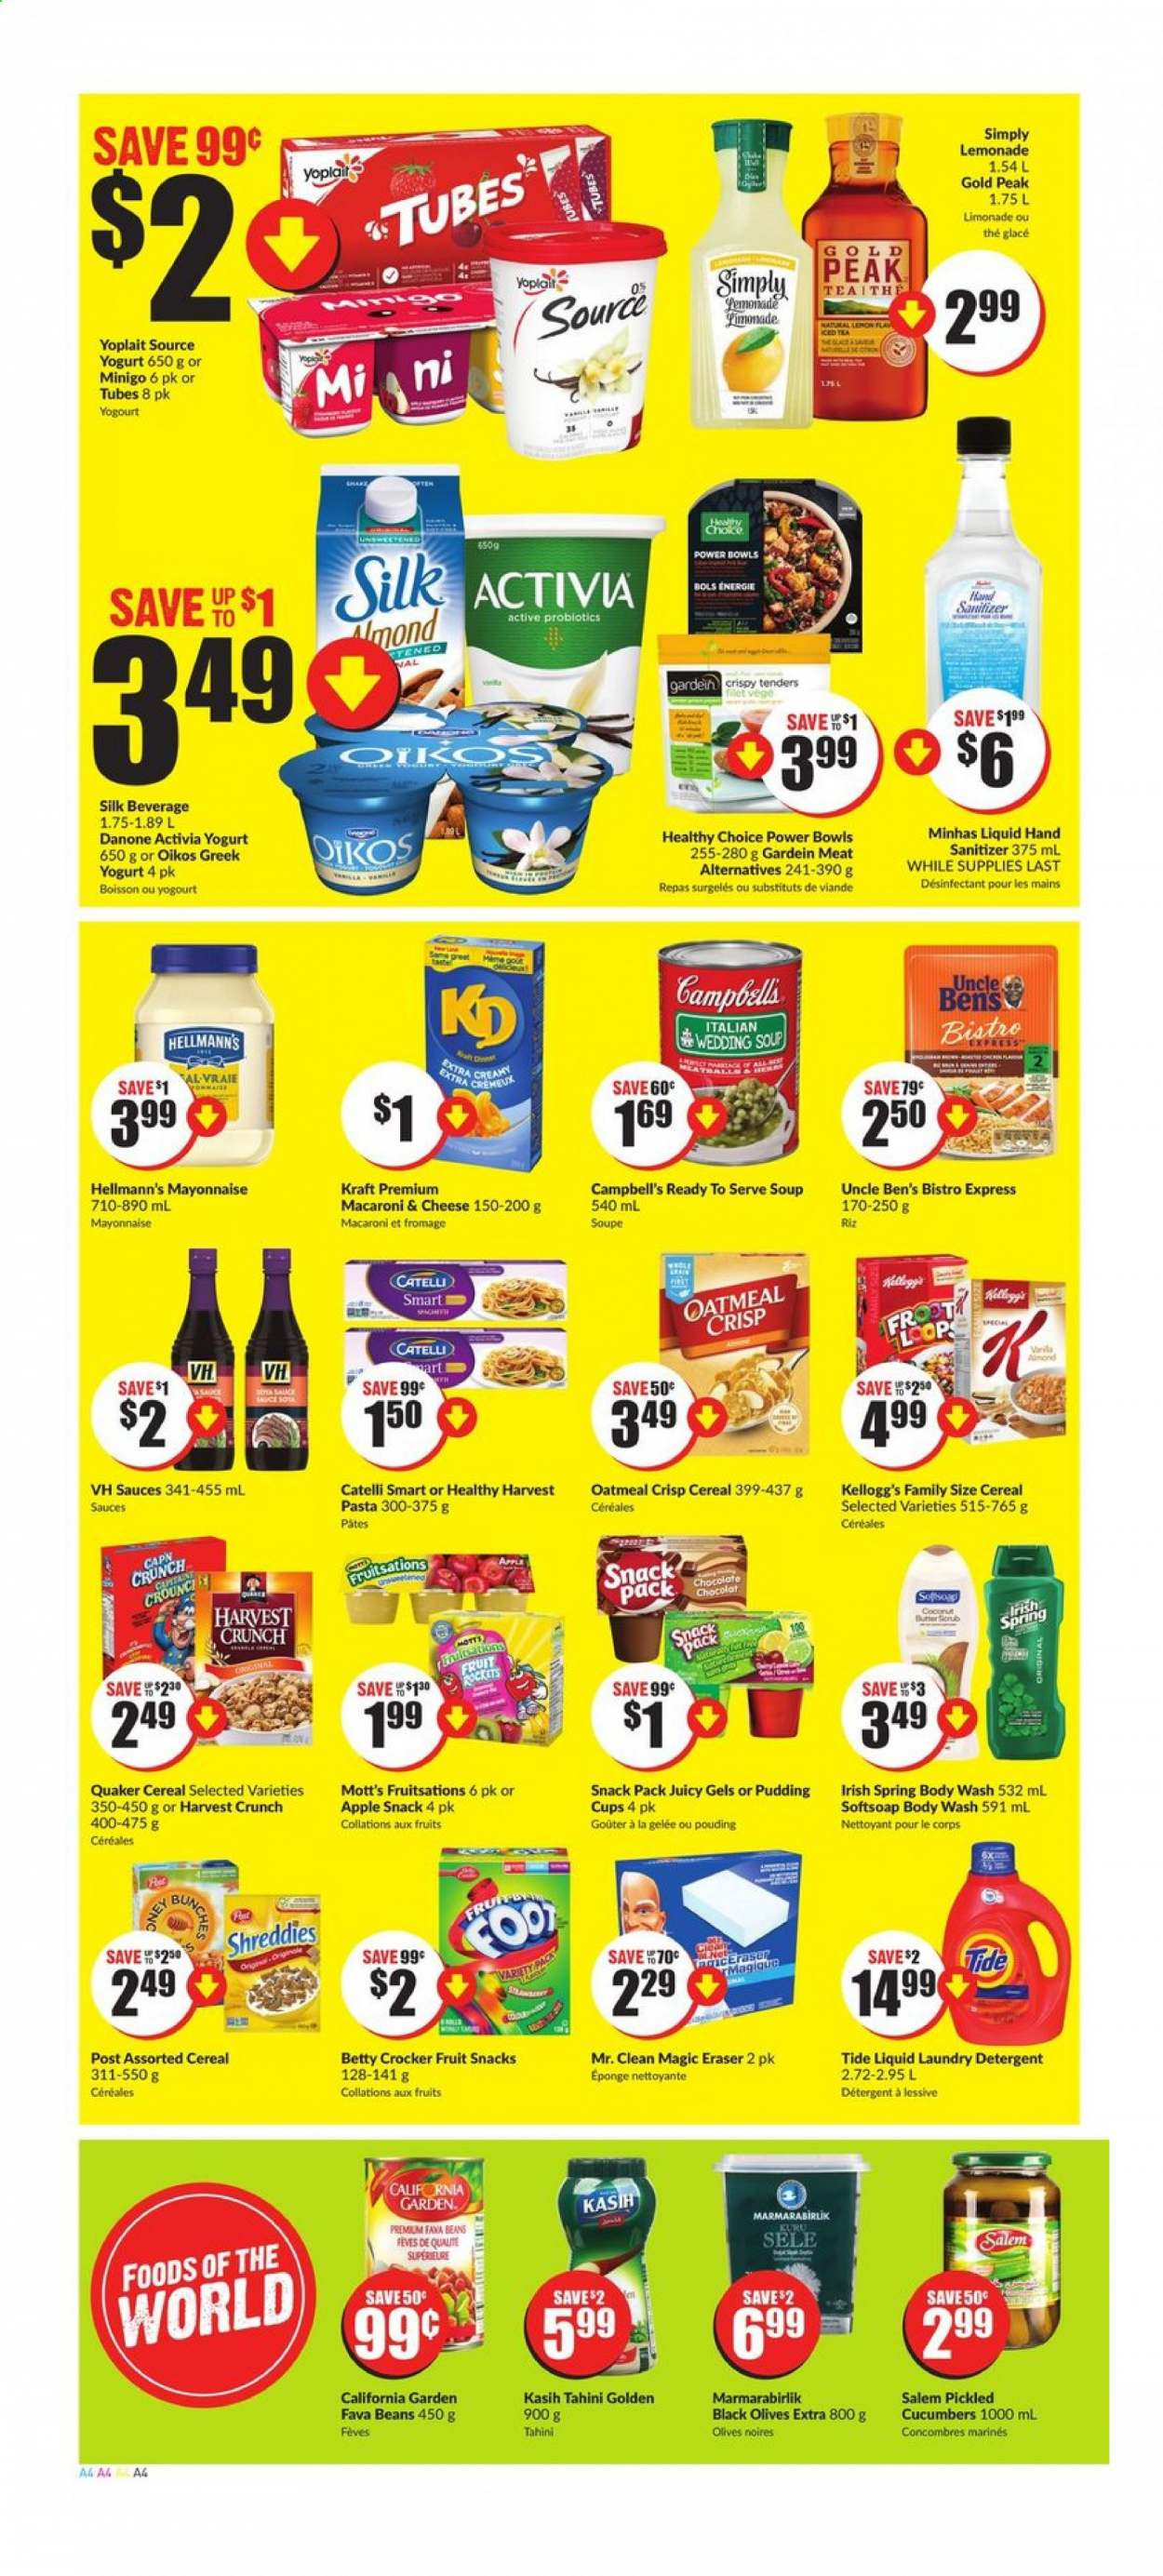 FreshCo. Flyer - August 13, 2020 - August 19, 2020 - Sales products - apples, beans, body wash, bowl, campbell's, cereals, cucumbers, detergent, fava beans, greek yogurt, lemonade, macaroni & cheese, mayonnaise, softsoap, tahini, tea, tide, yogurt, probiotics, pudding, oatmeal, olives, cheese, coconut, macaroni, soup, snack, iced tea, cereal, pasta, danone, eraser, chocolat, viande, activia, boisson, éponge, fève, fromage, glace, soupe, kellogg's, nettoyeur, lessive, riz, pâtes, snacks, fruits, hand sanitizer. Page 4.